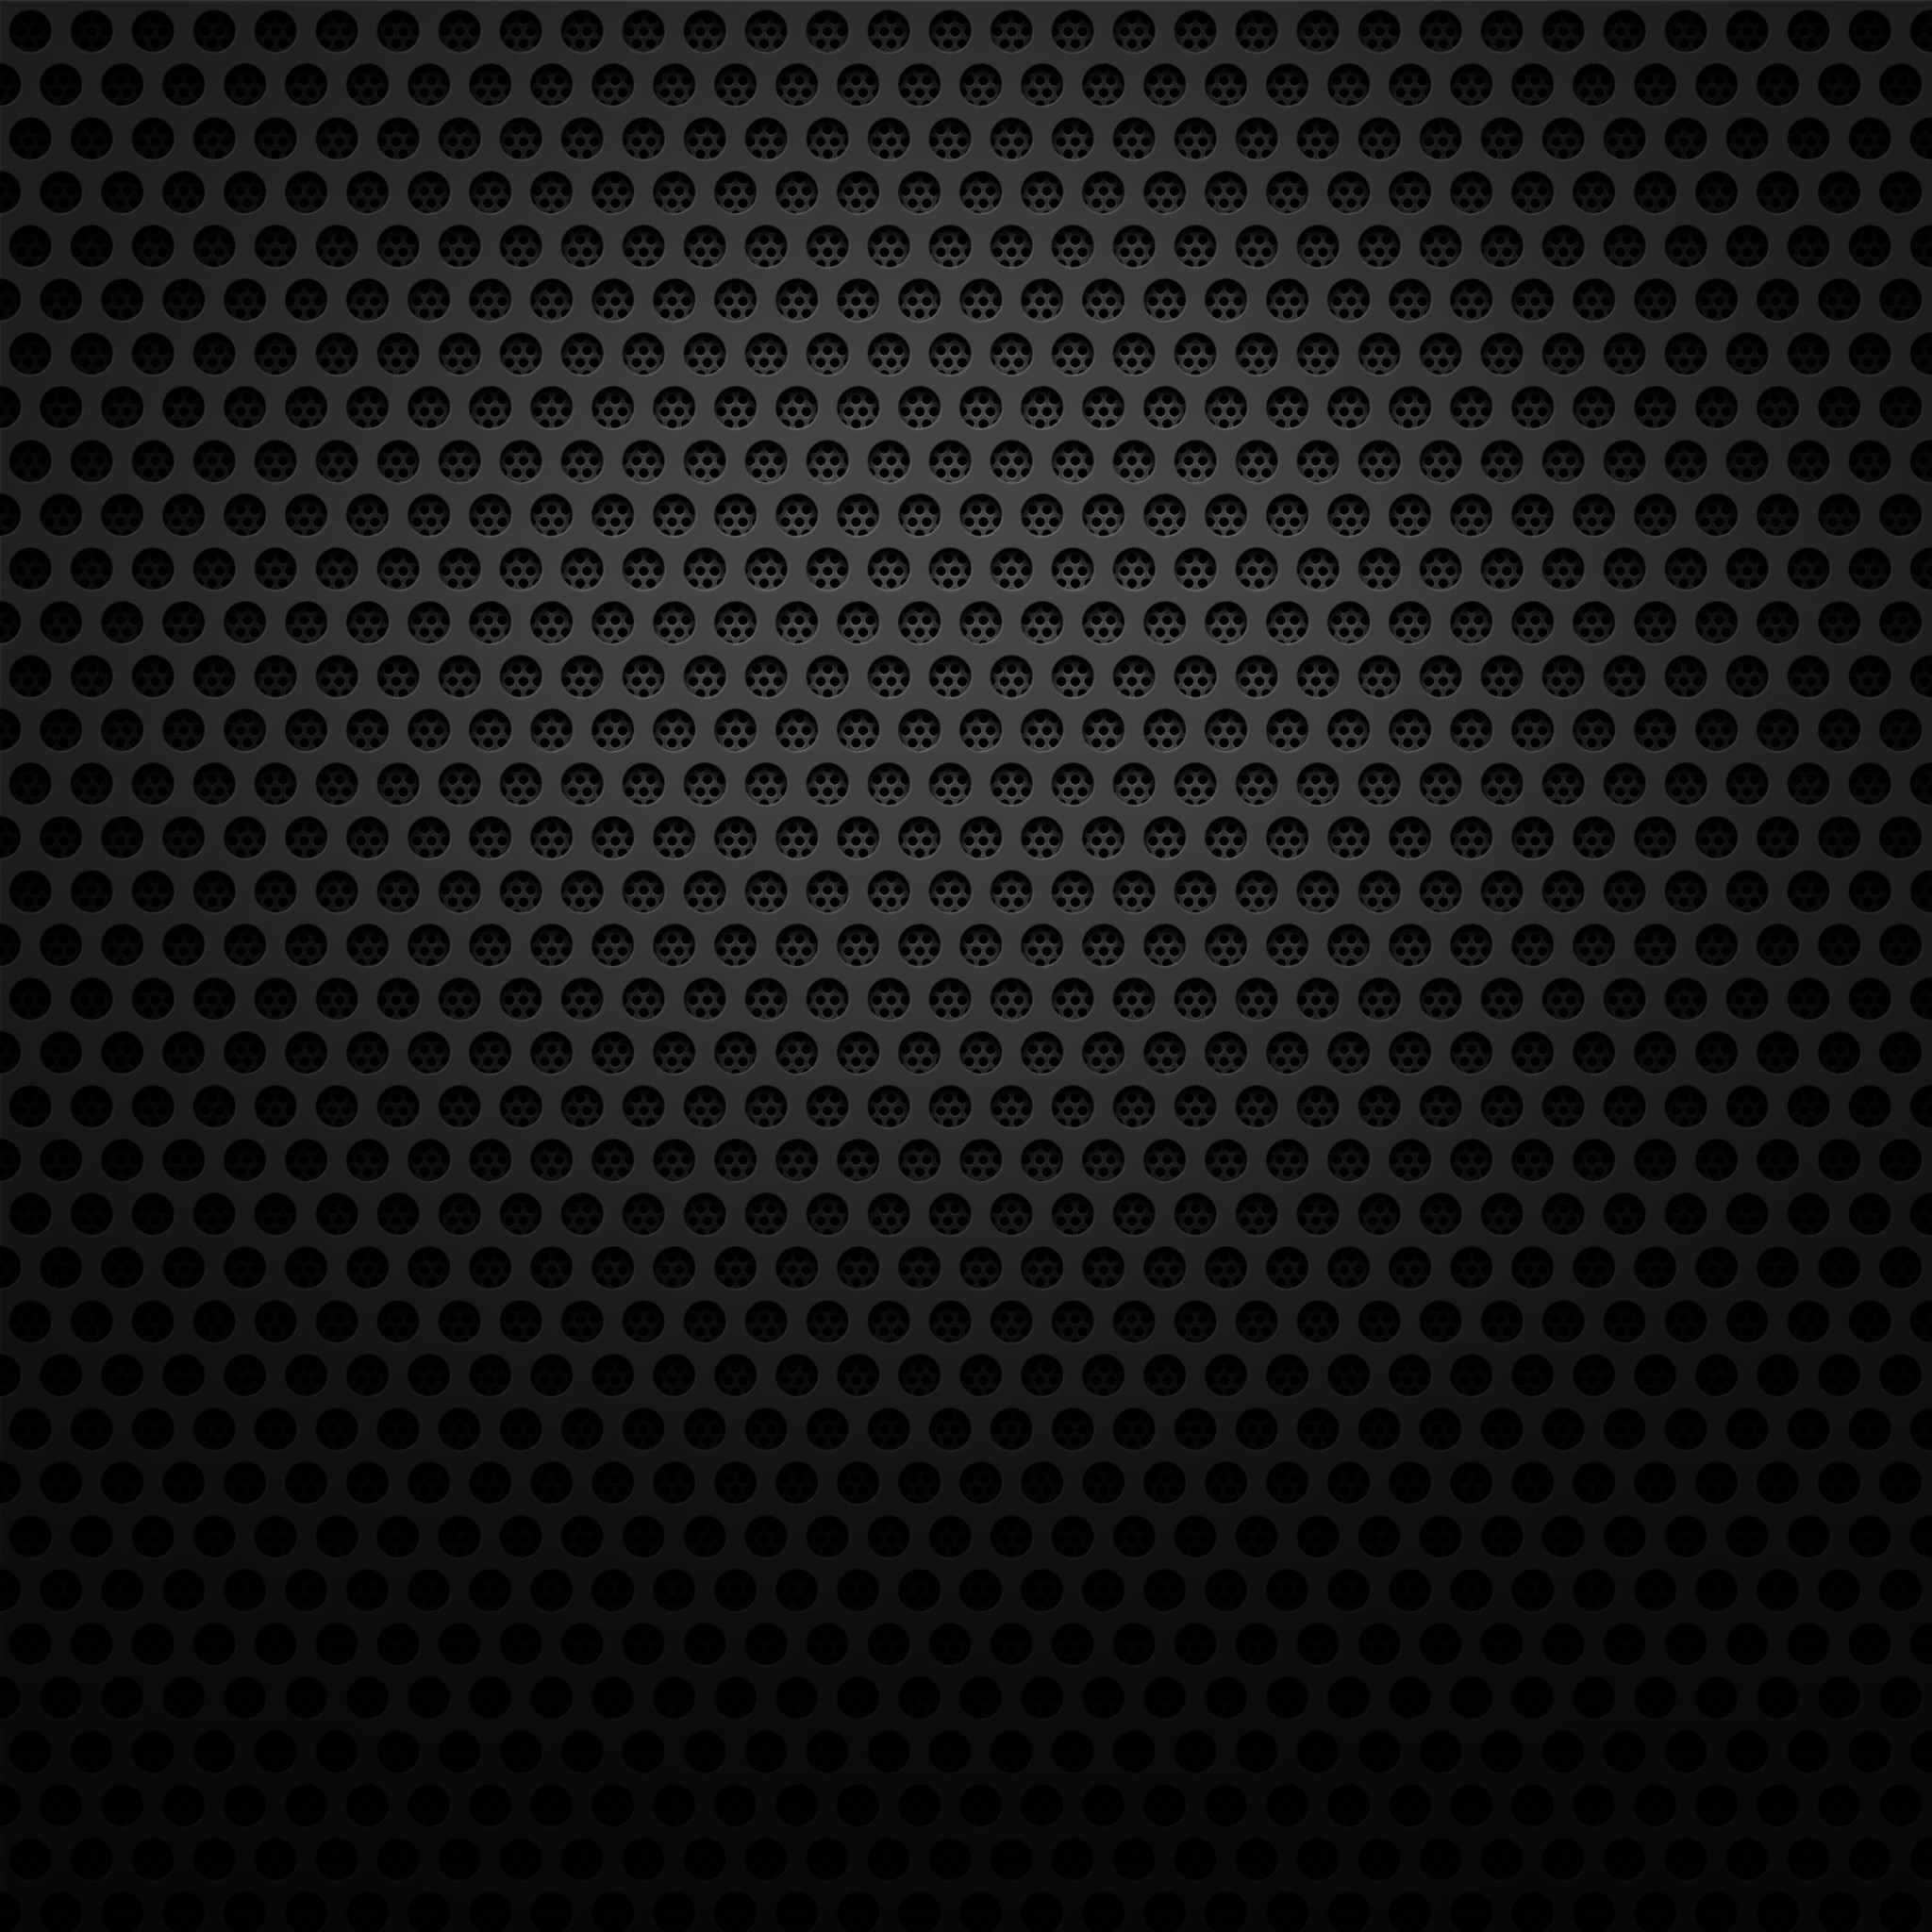 Cool Iphone 4 Wallpapers: Original IOS 4 Wallpapers (67+ Images